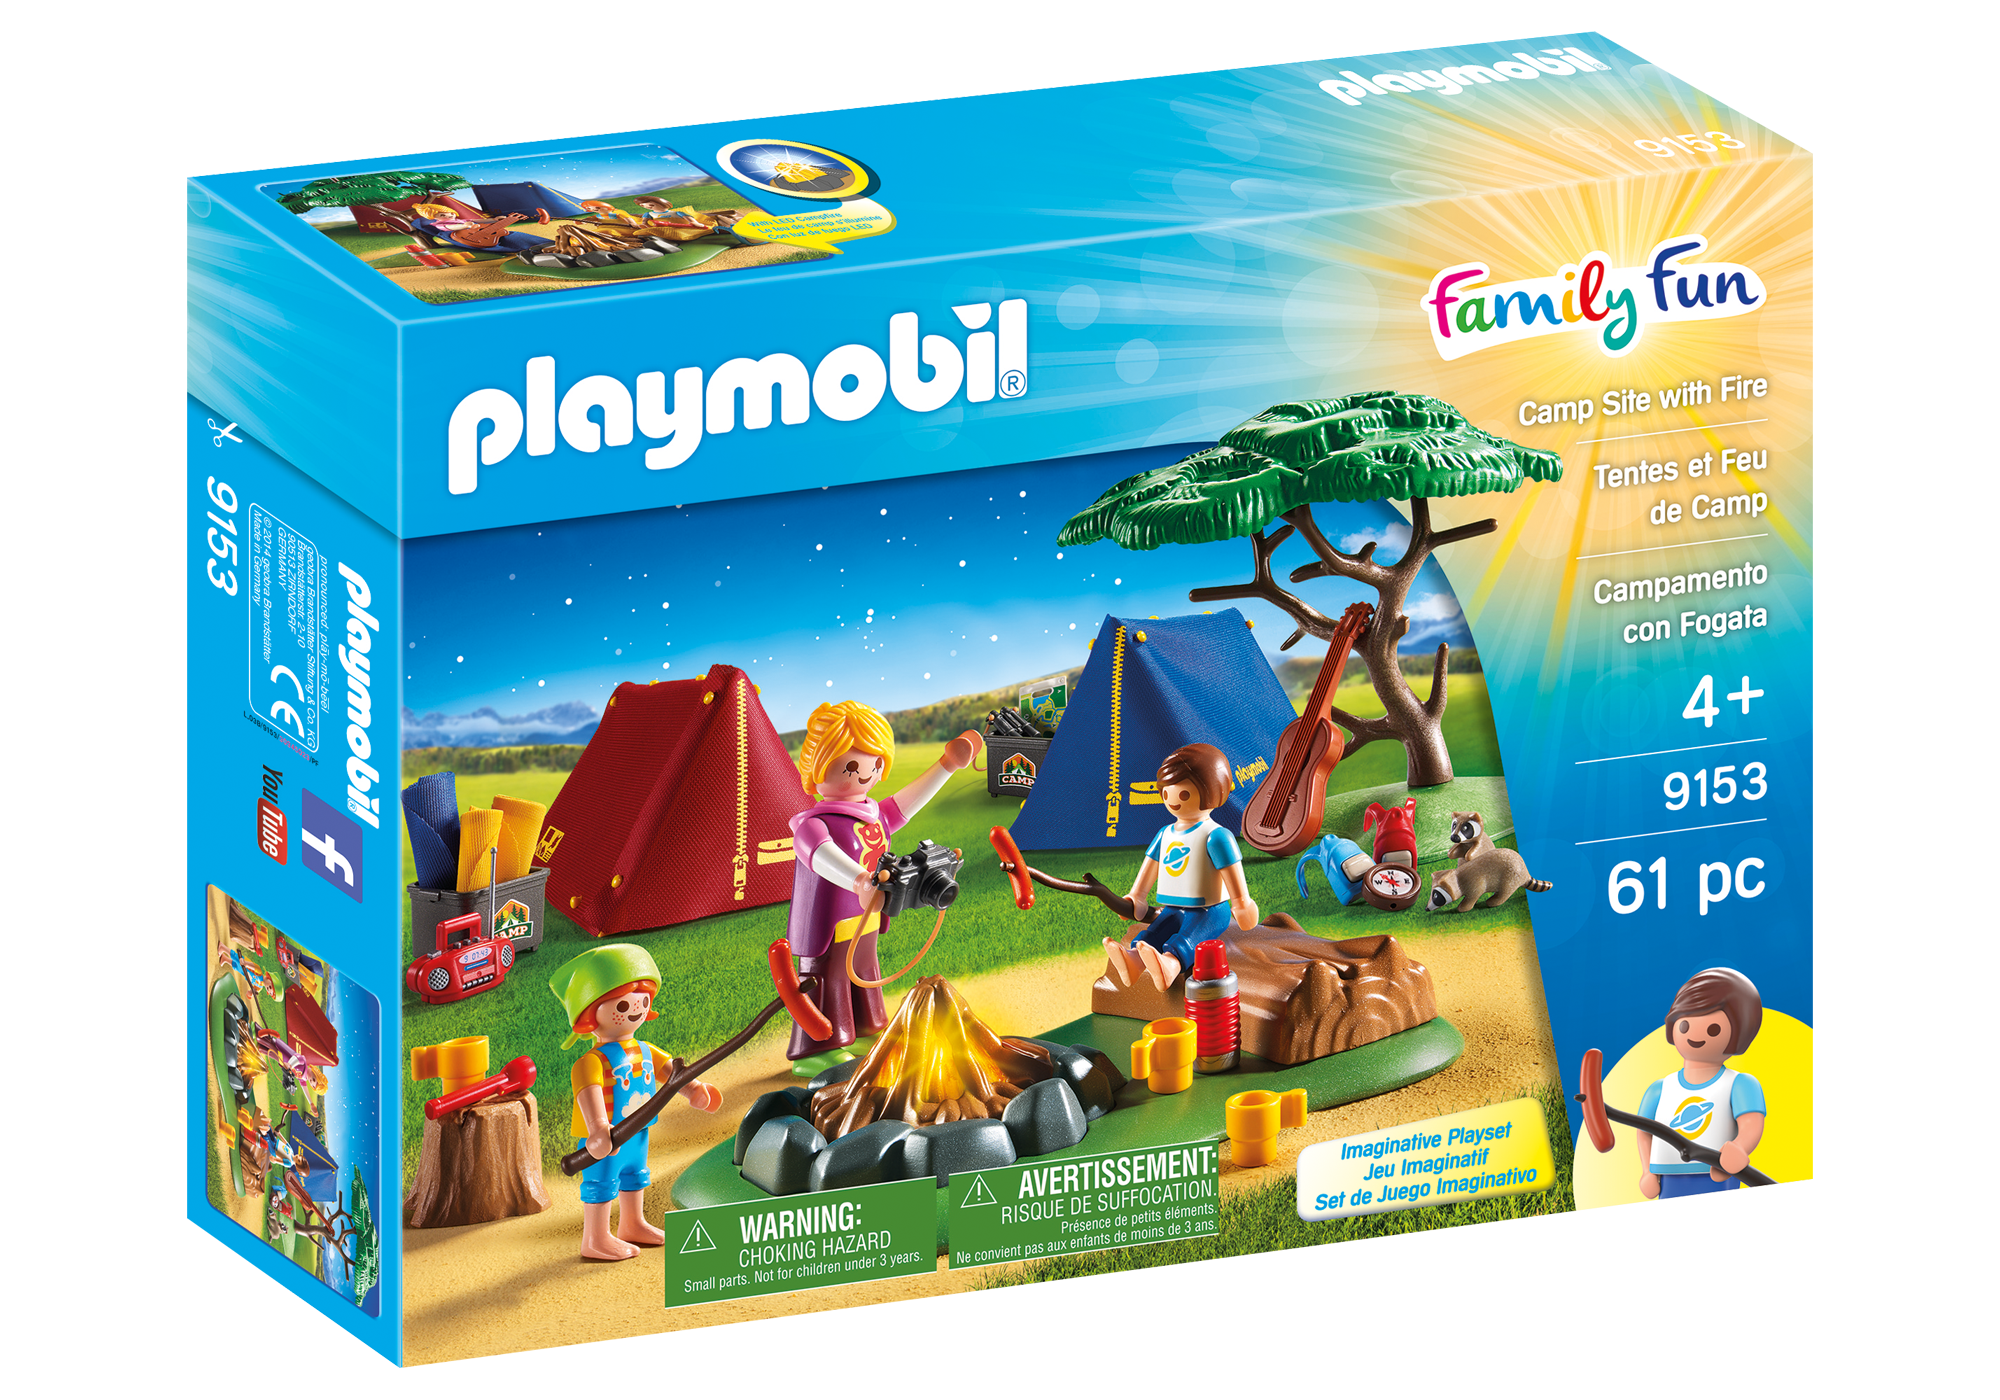 http://media.playmobil.com/i/playmobil/9153_product_box_front/Camp Site with Fire